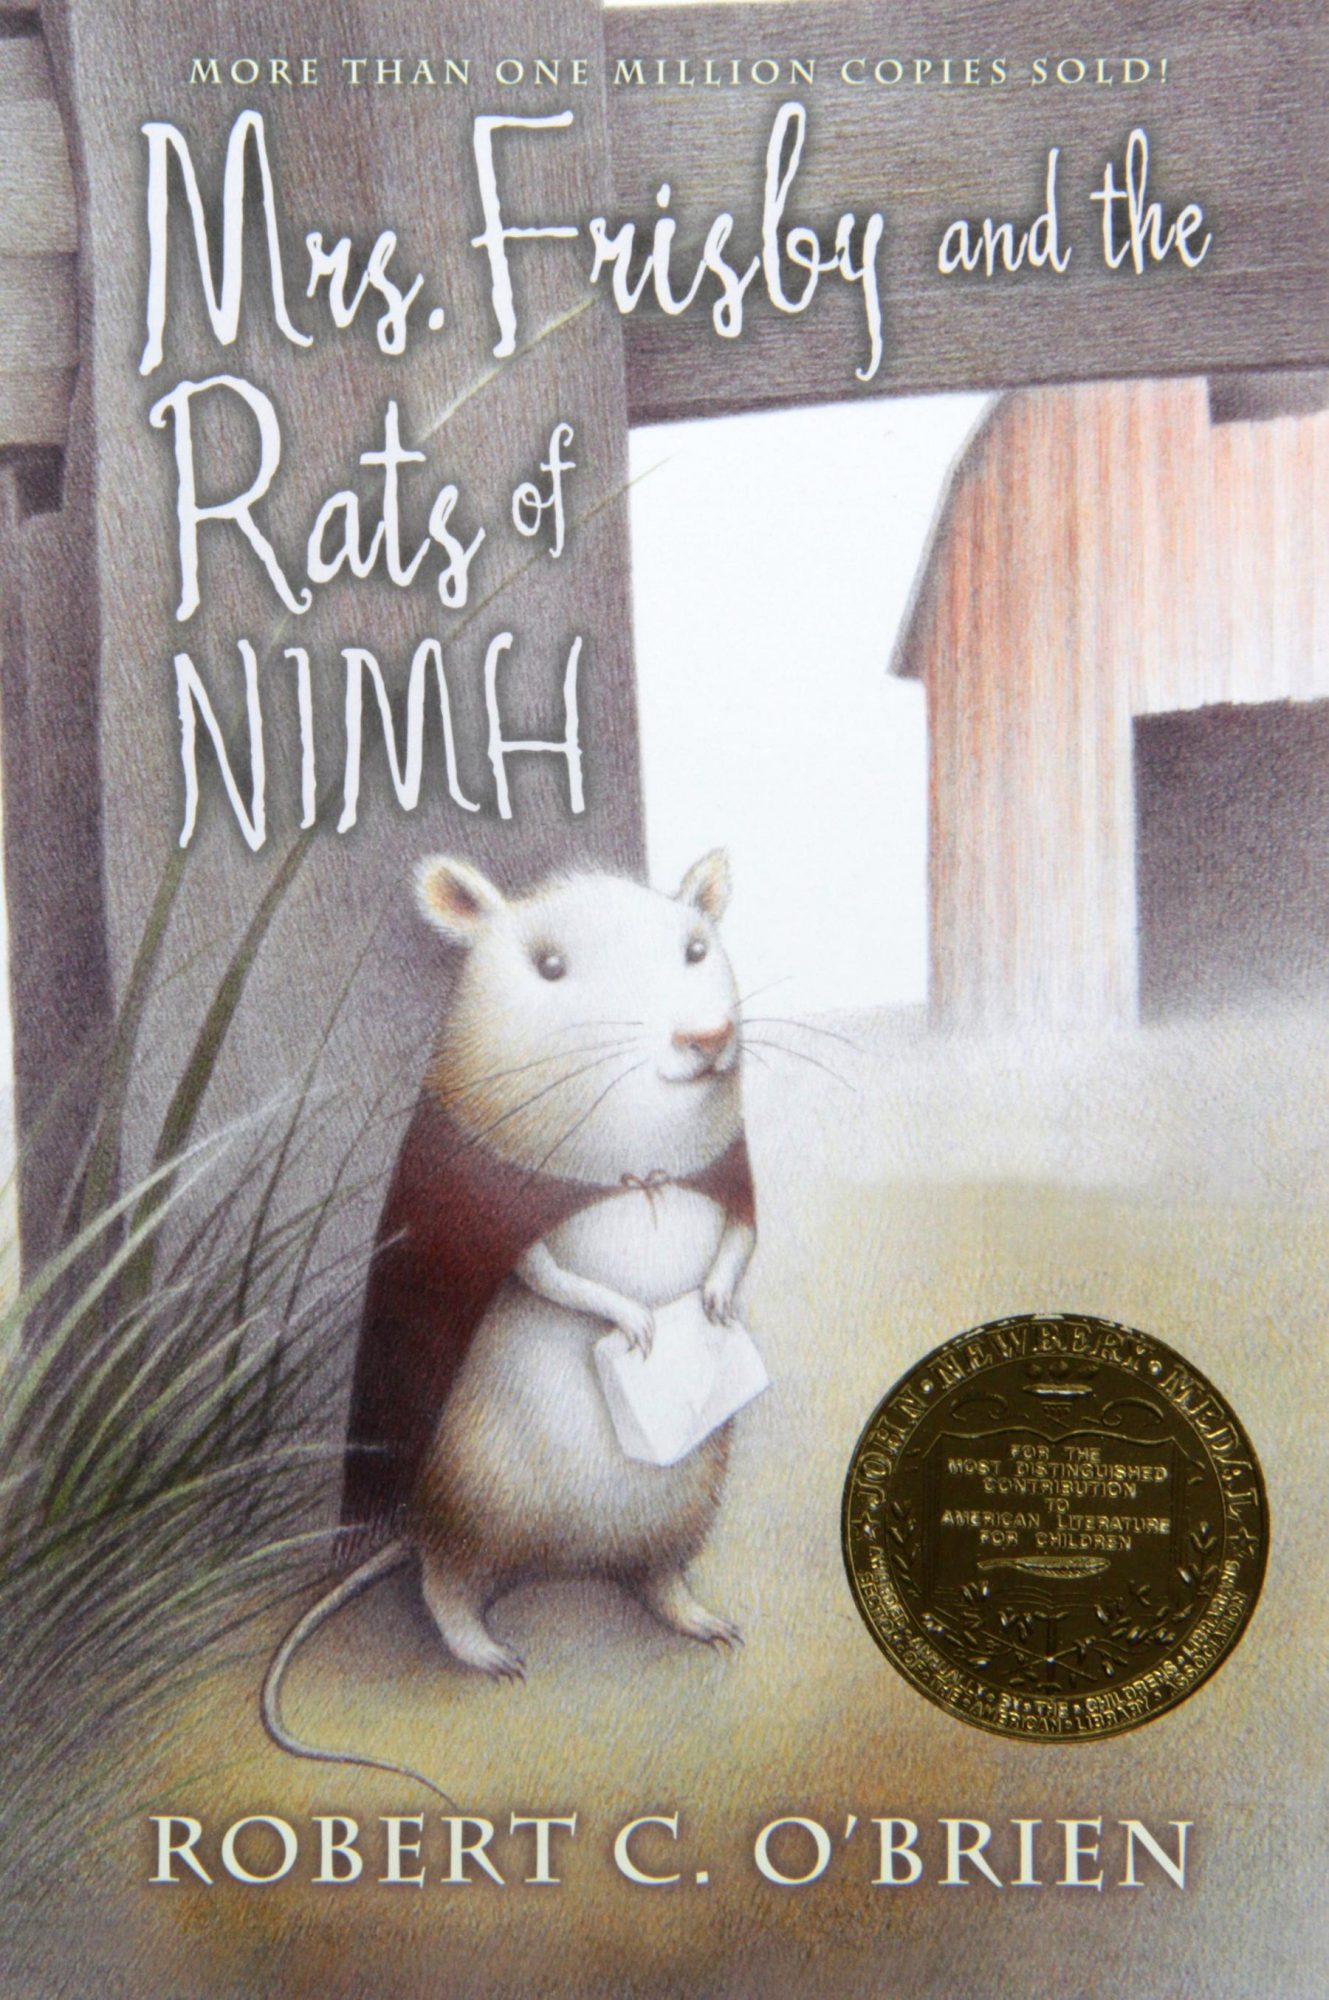 Mrs. Frisby and the Rats of NIMHby Robert C. O'Brien